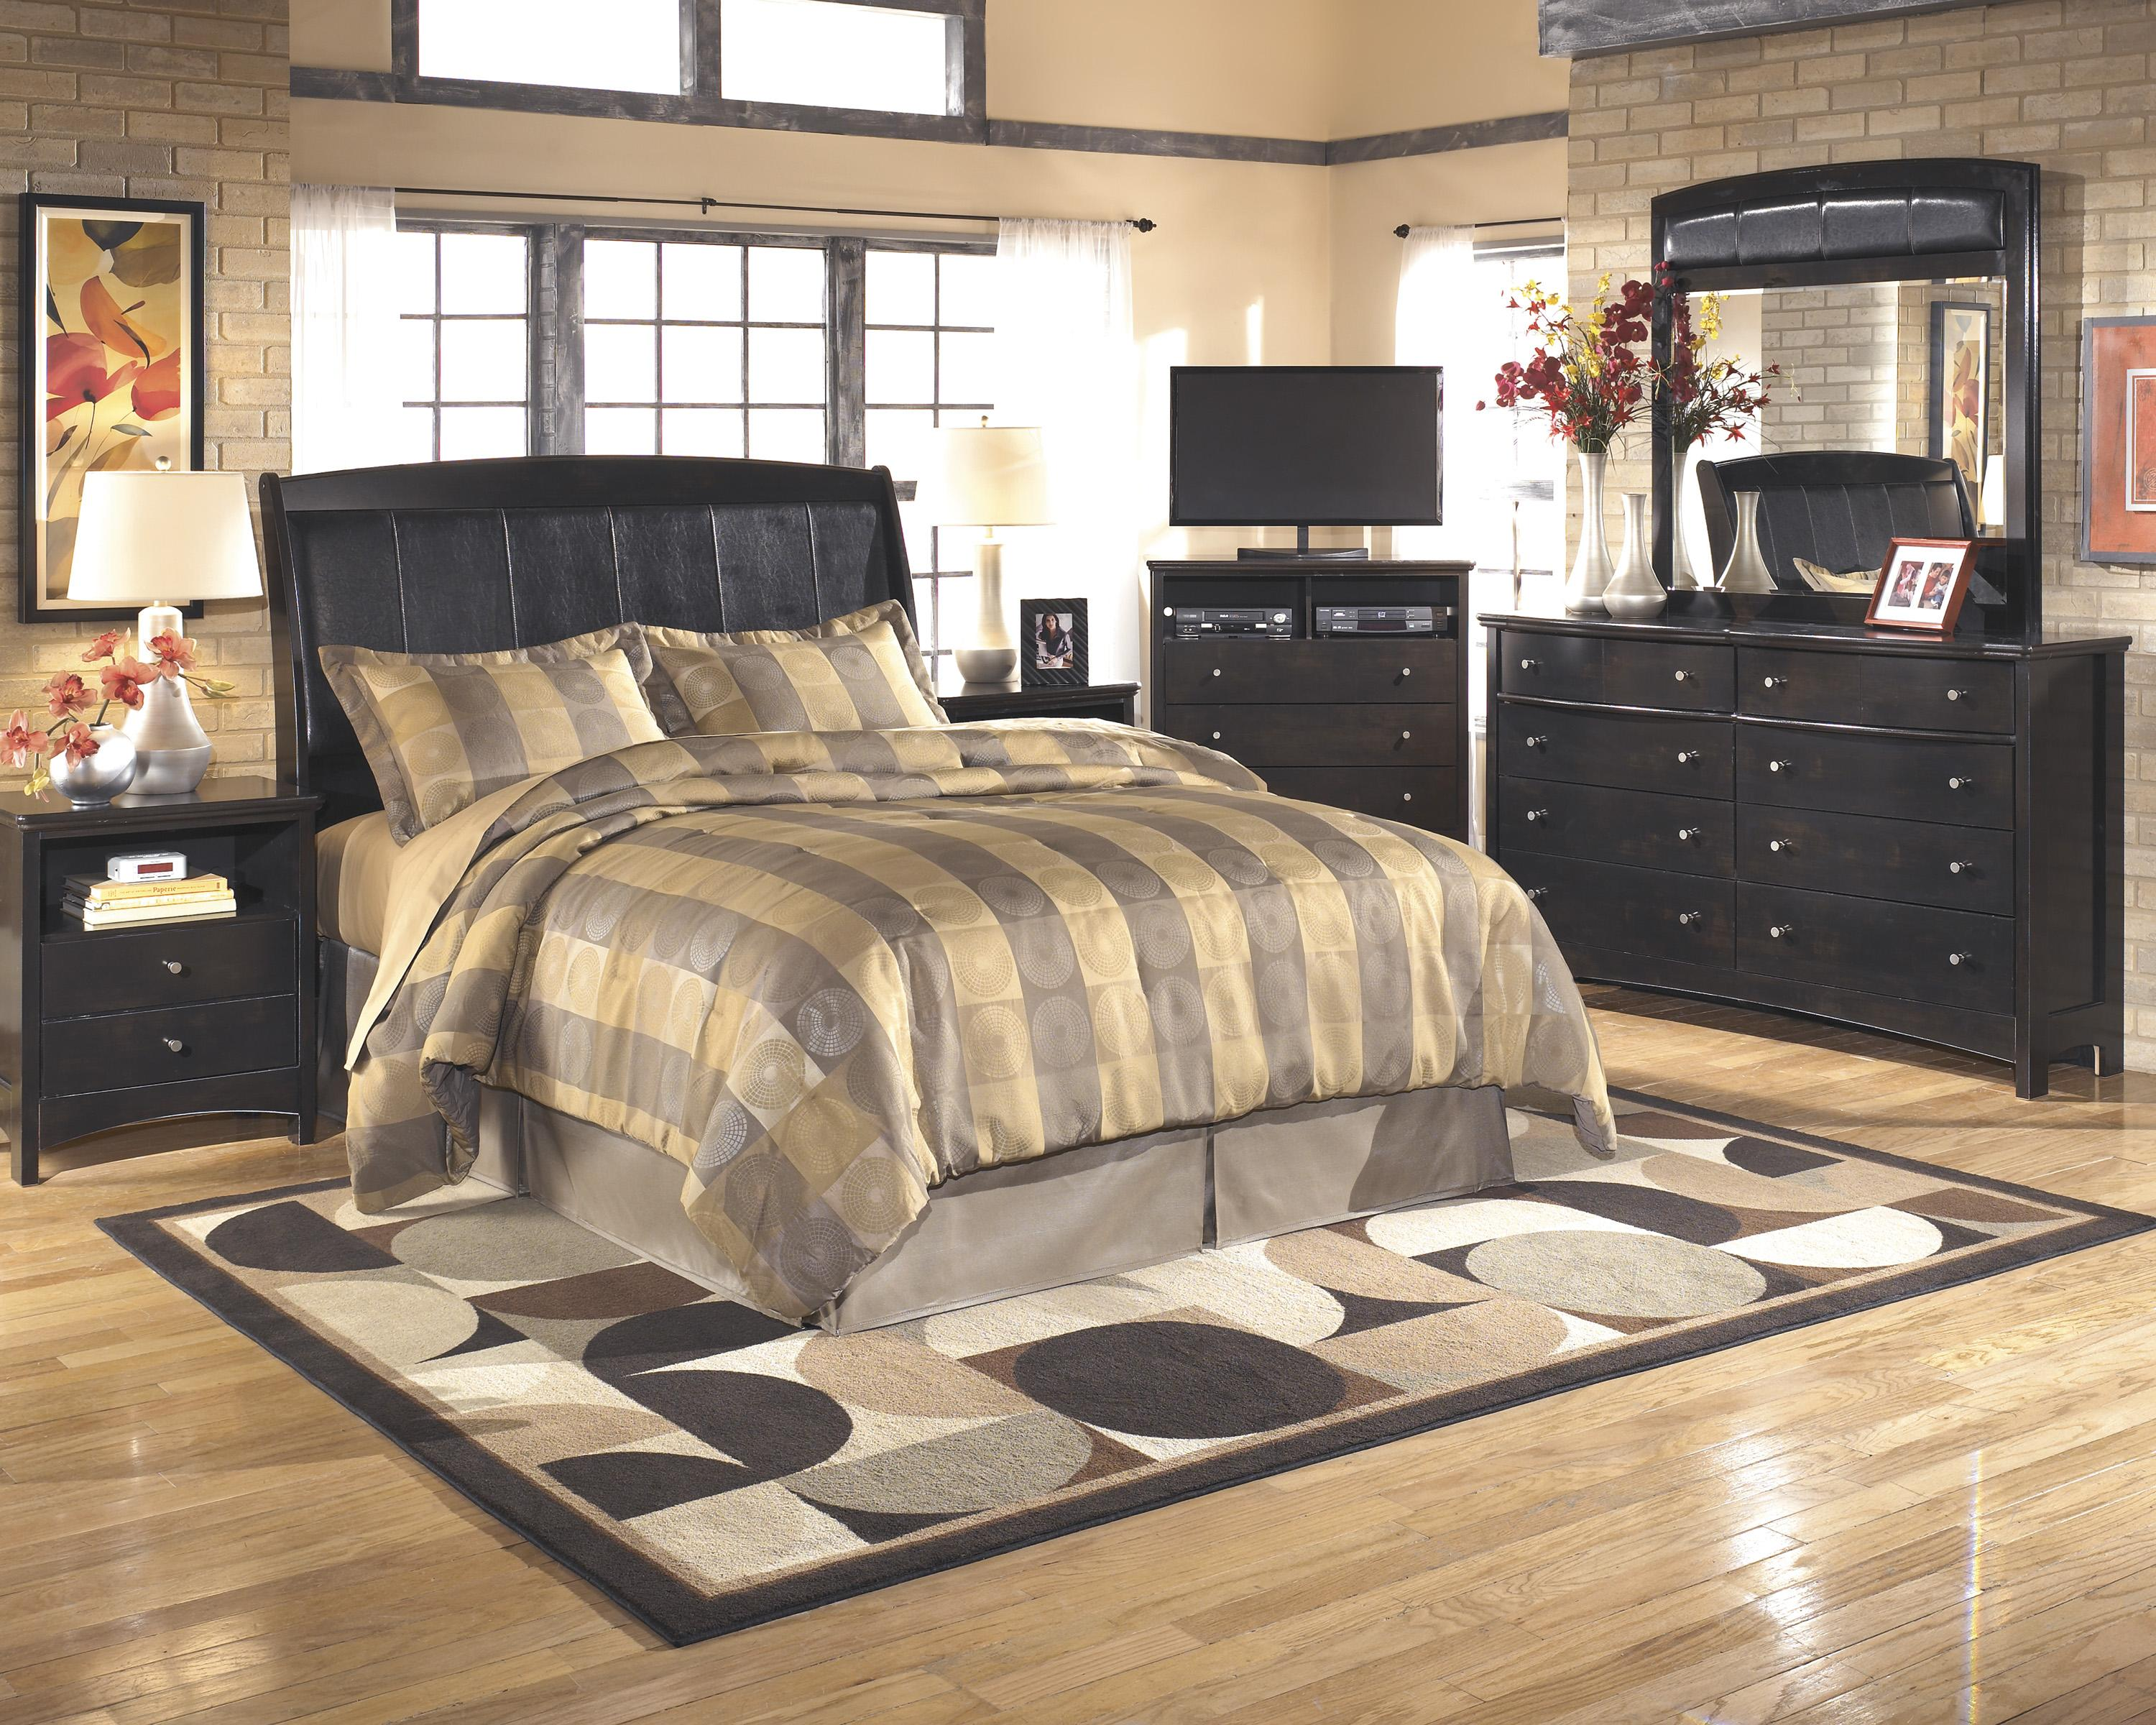 Signature Design by Ashley Harmony Queen/Full Bedroom Group - Item Number: B208 Q Bedroom Group 4